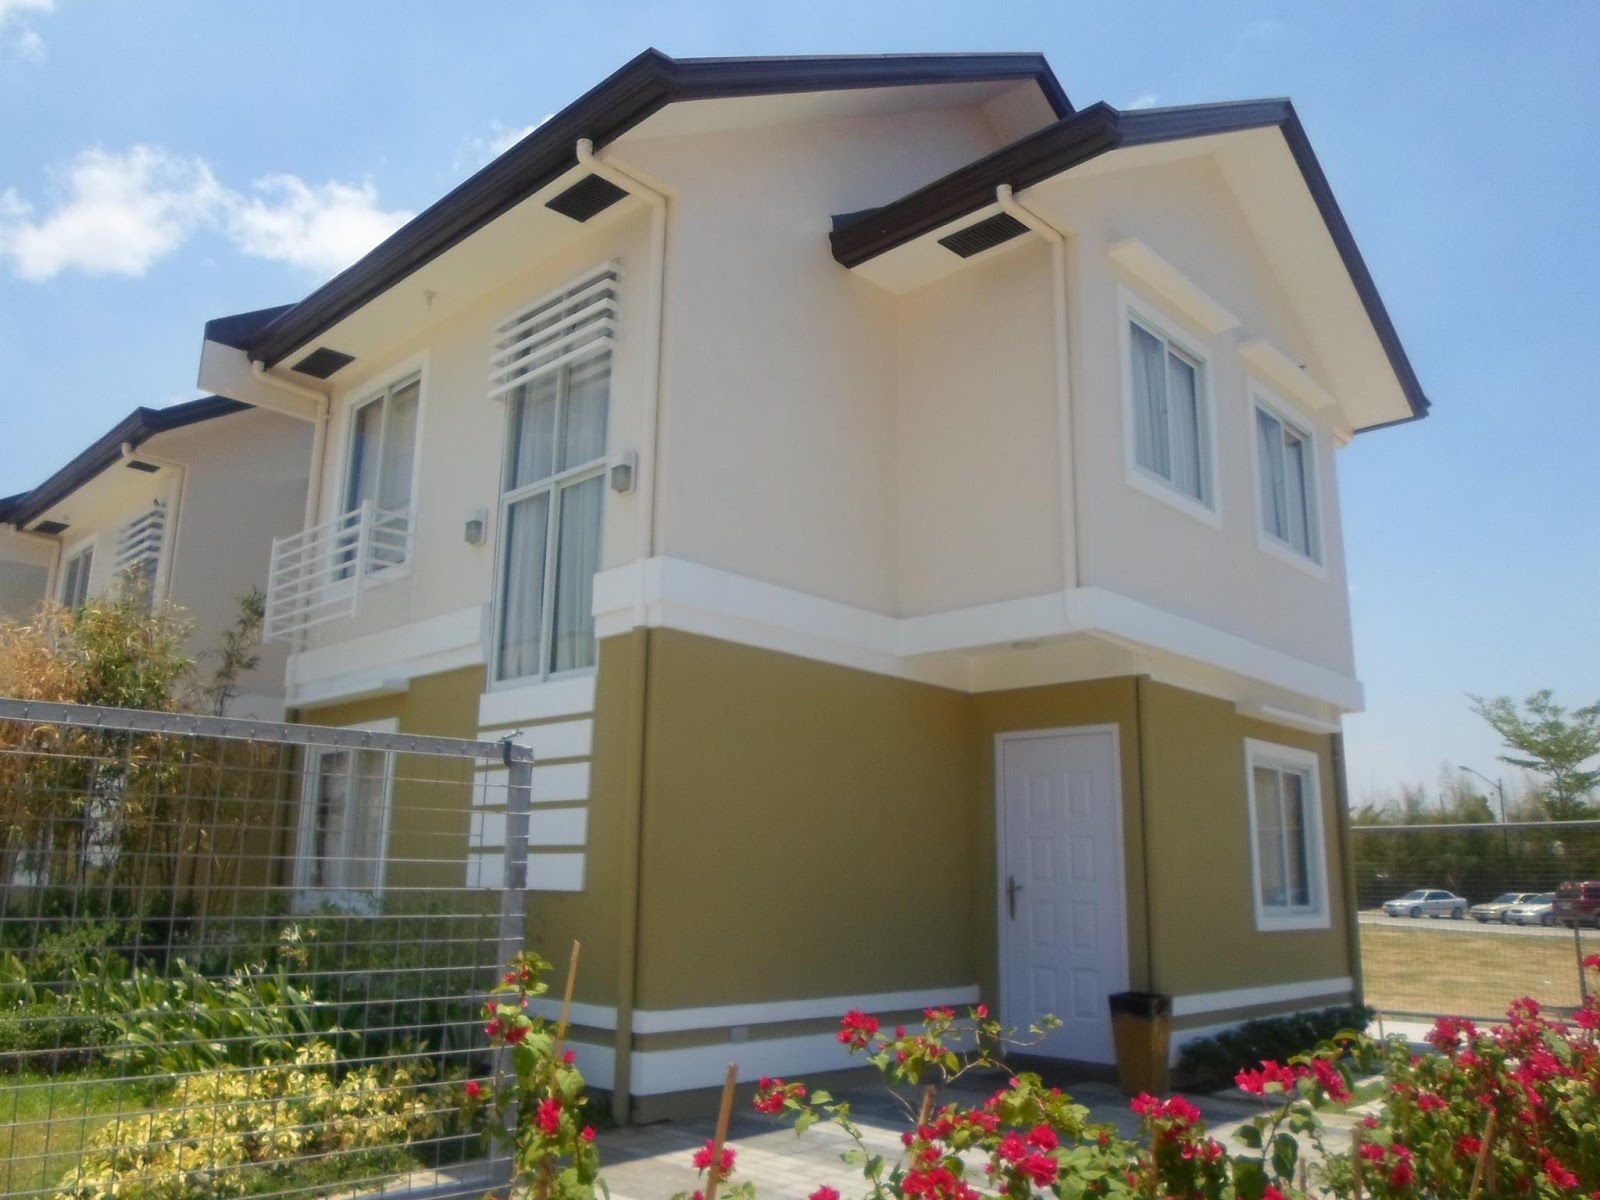 Affordable house design in the philippines lancaster new for Affordable house decor